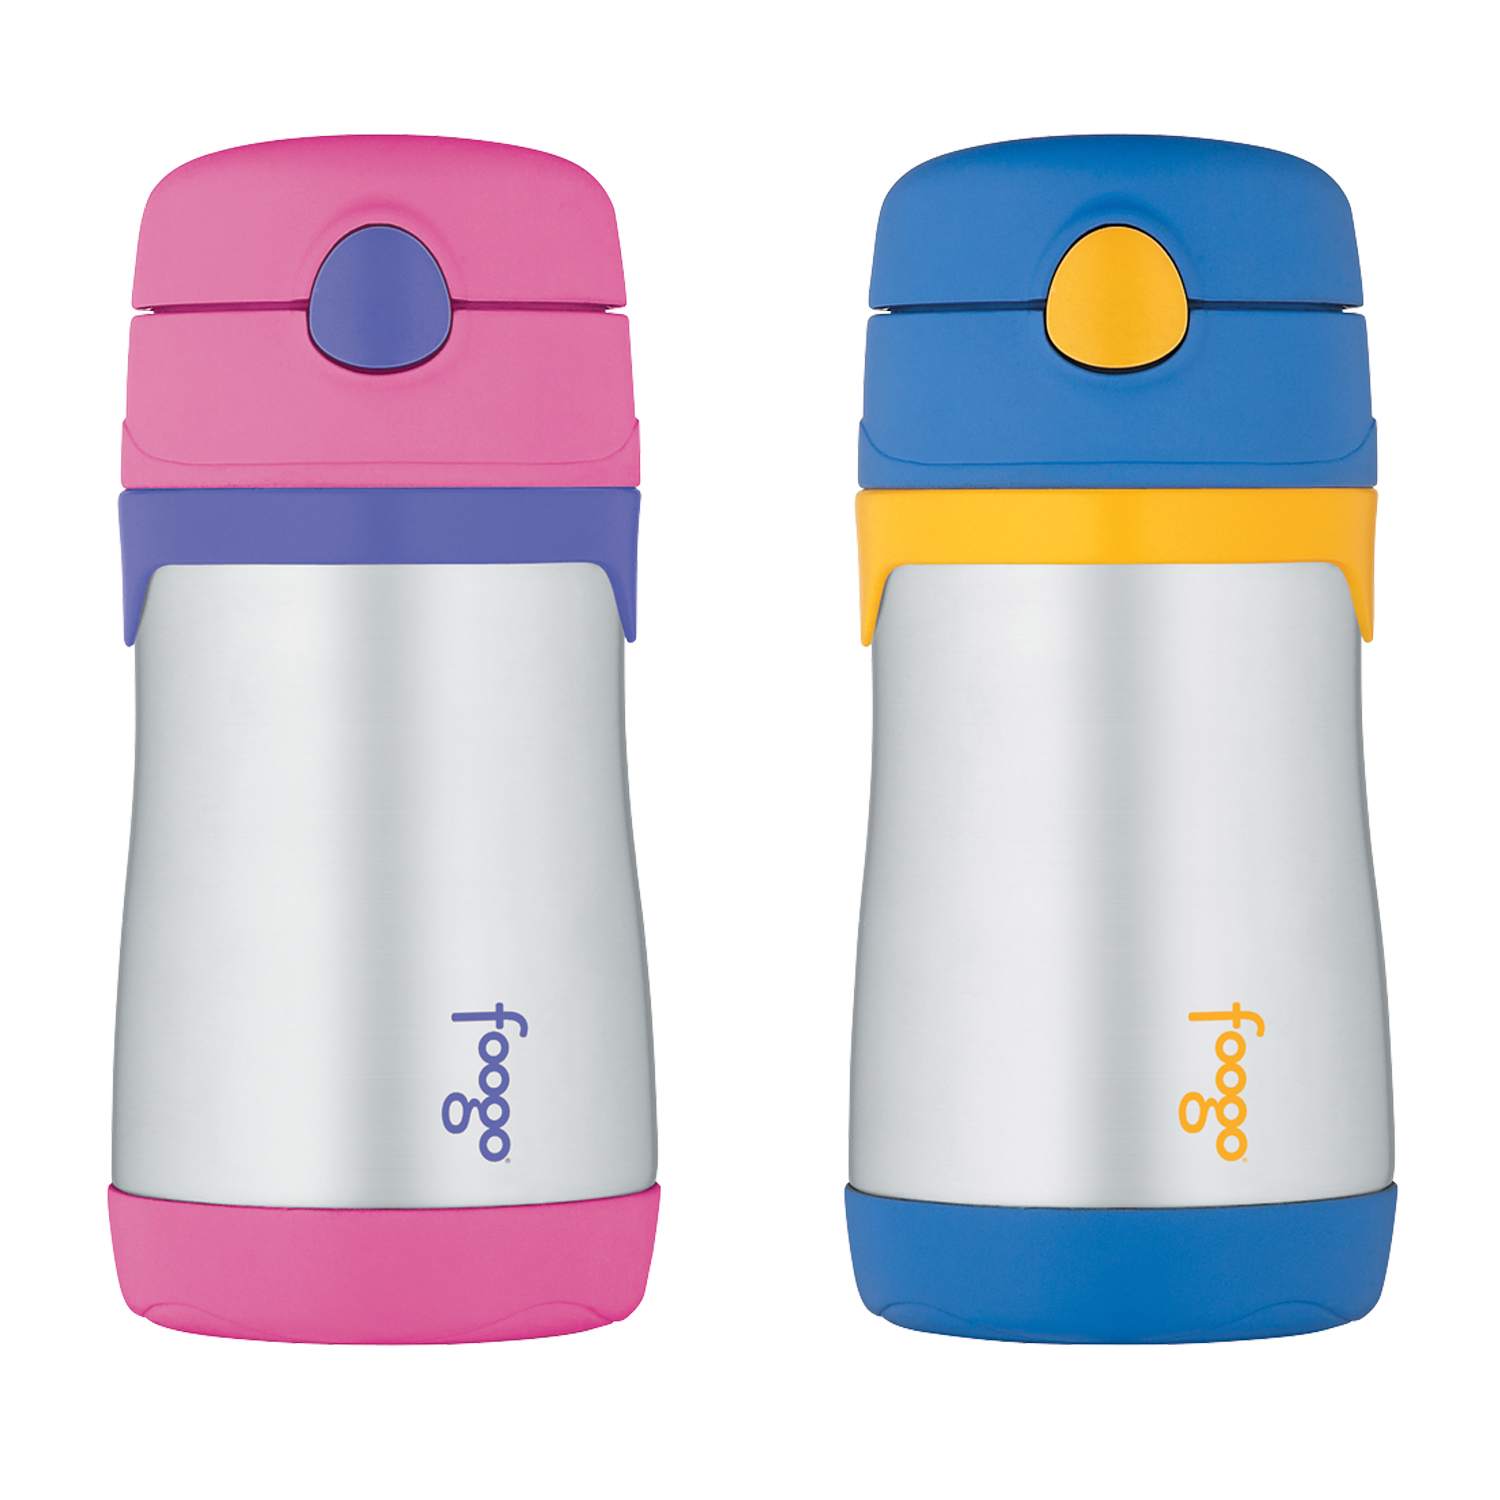 Thermos FOOGO Vacuum Insulated Stainless Steel 10-Ounce Straw Bottle, Pink/Purple & Thermos FOOGO Vacuum Insulated Stainless Steel 10-Ounce Straw Bottle, Blue/Yellow